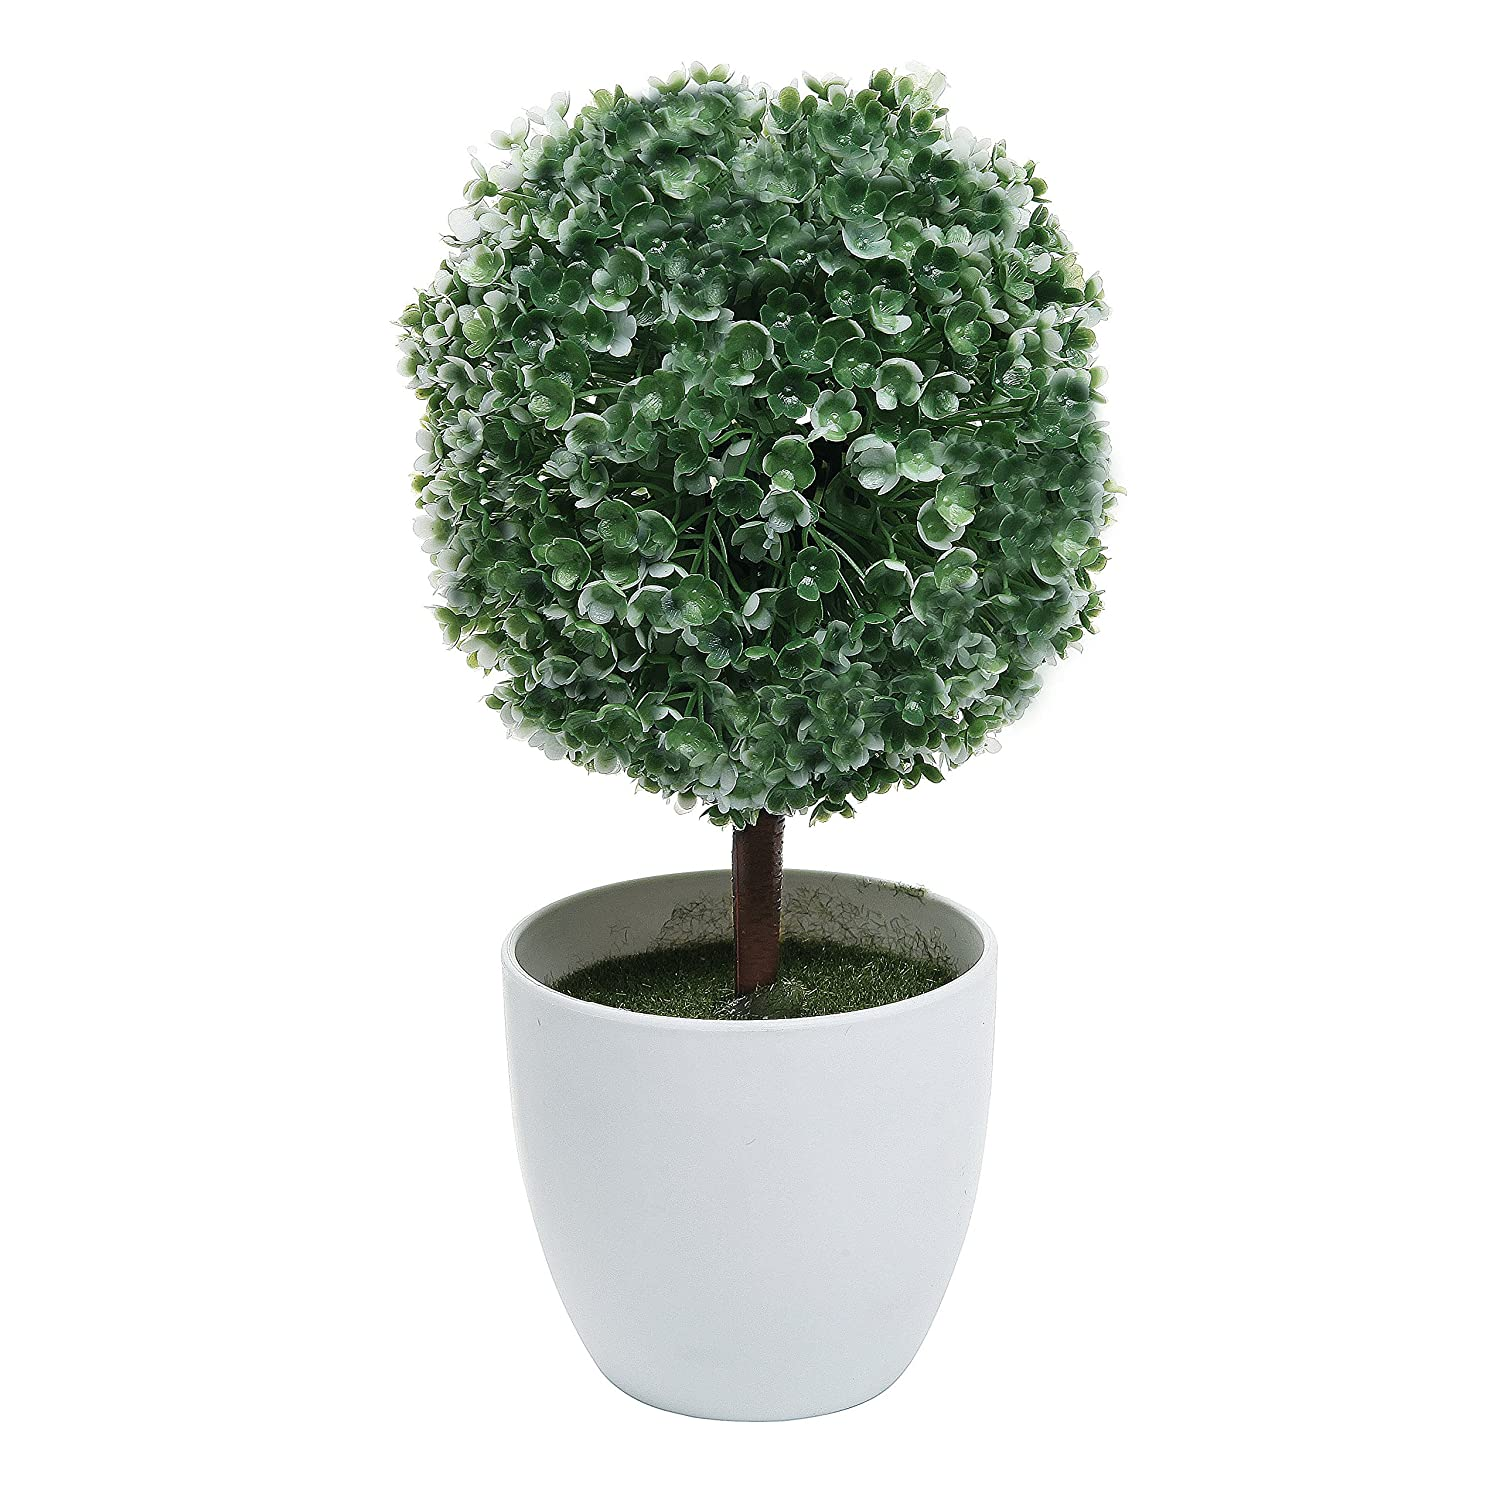 Artificial Topiary Trees Cheap Part - 46: Amazon.com - Set Of 2 Artificial Faux Potted Tabletop White Flower Plant  Topiary W/ White Planter Pots - MyGift Home -